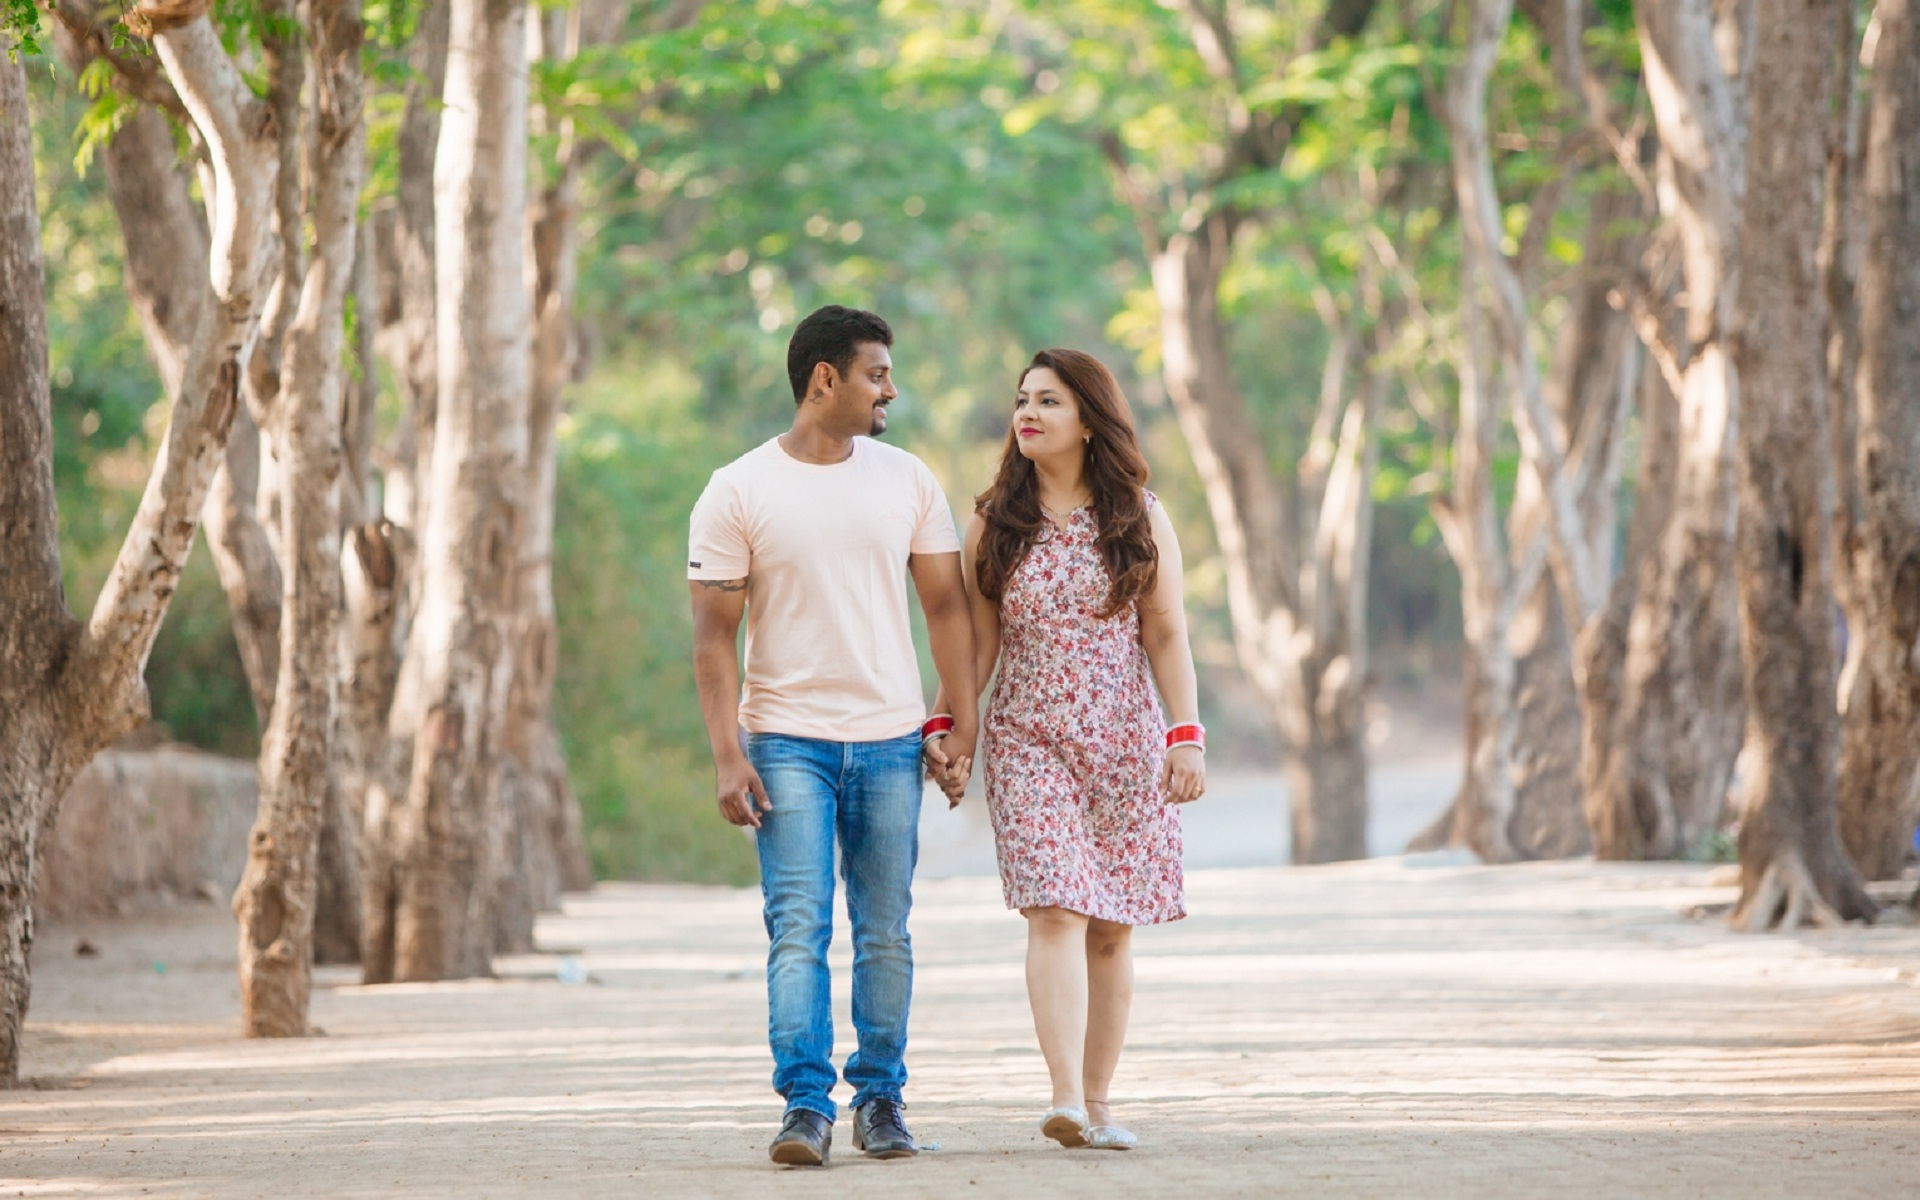 Hands holding couple walking in park lovely | HD Wallpapers Rocks